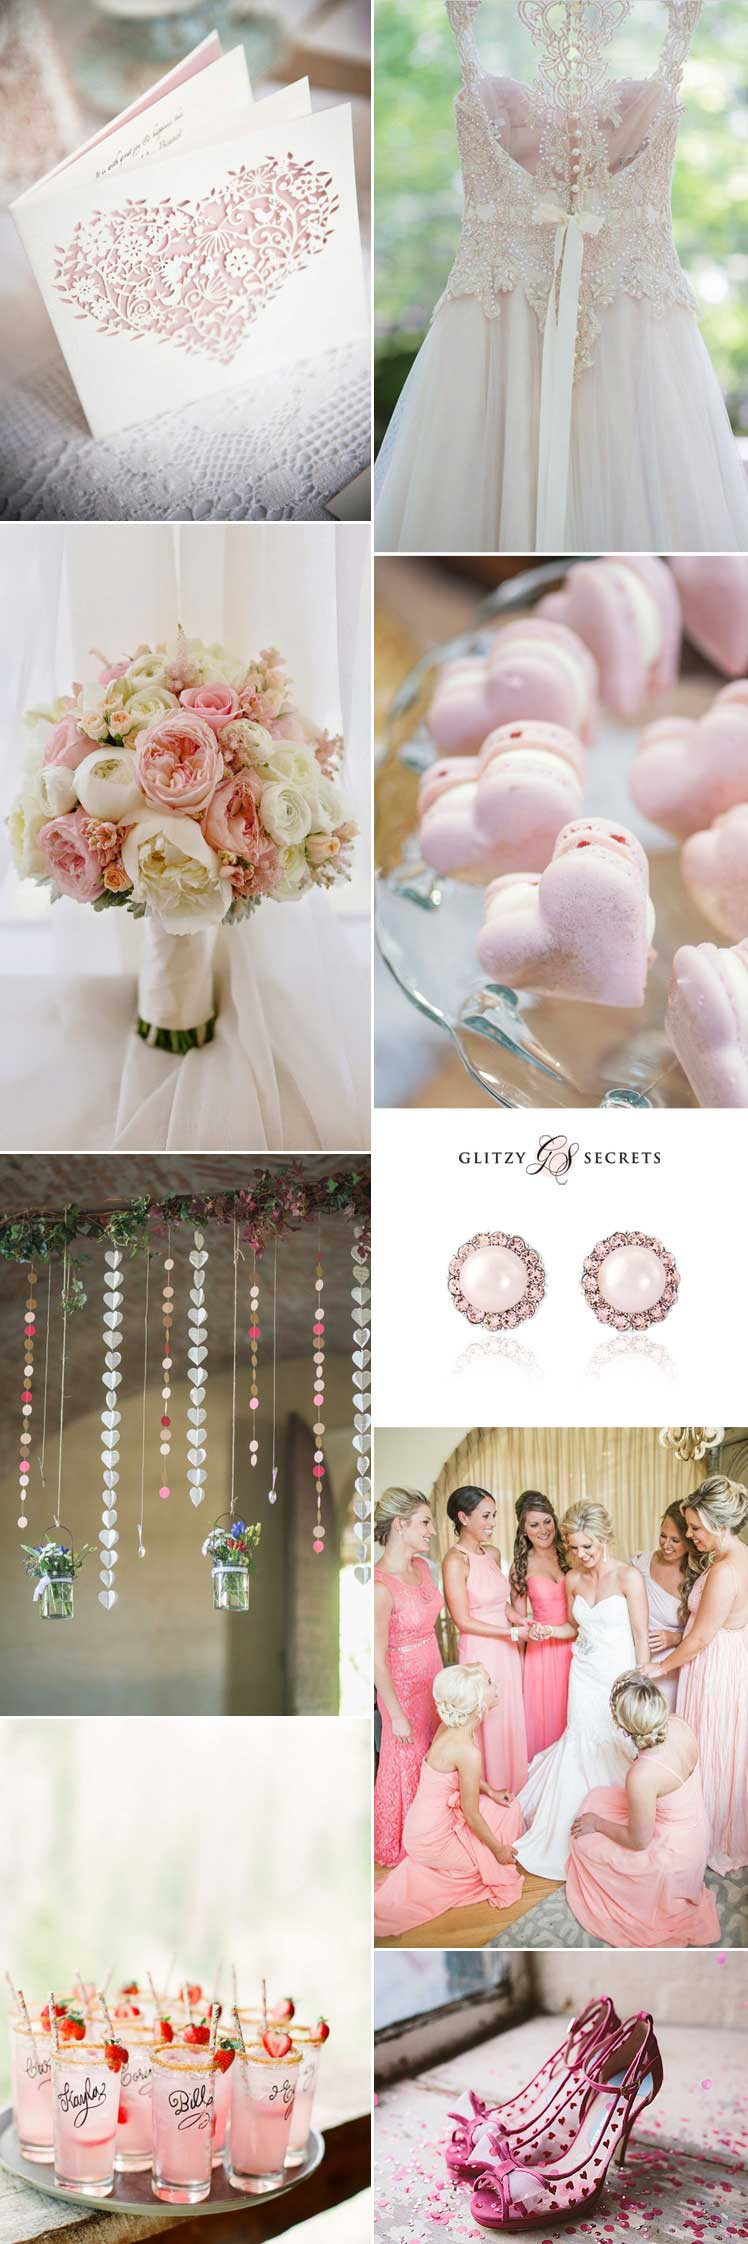 wonderfully pink - valentine wedding ideas with hearts